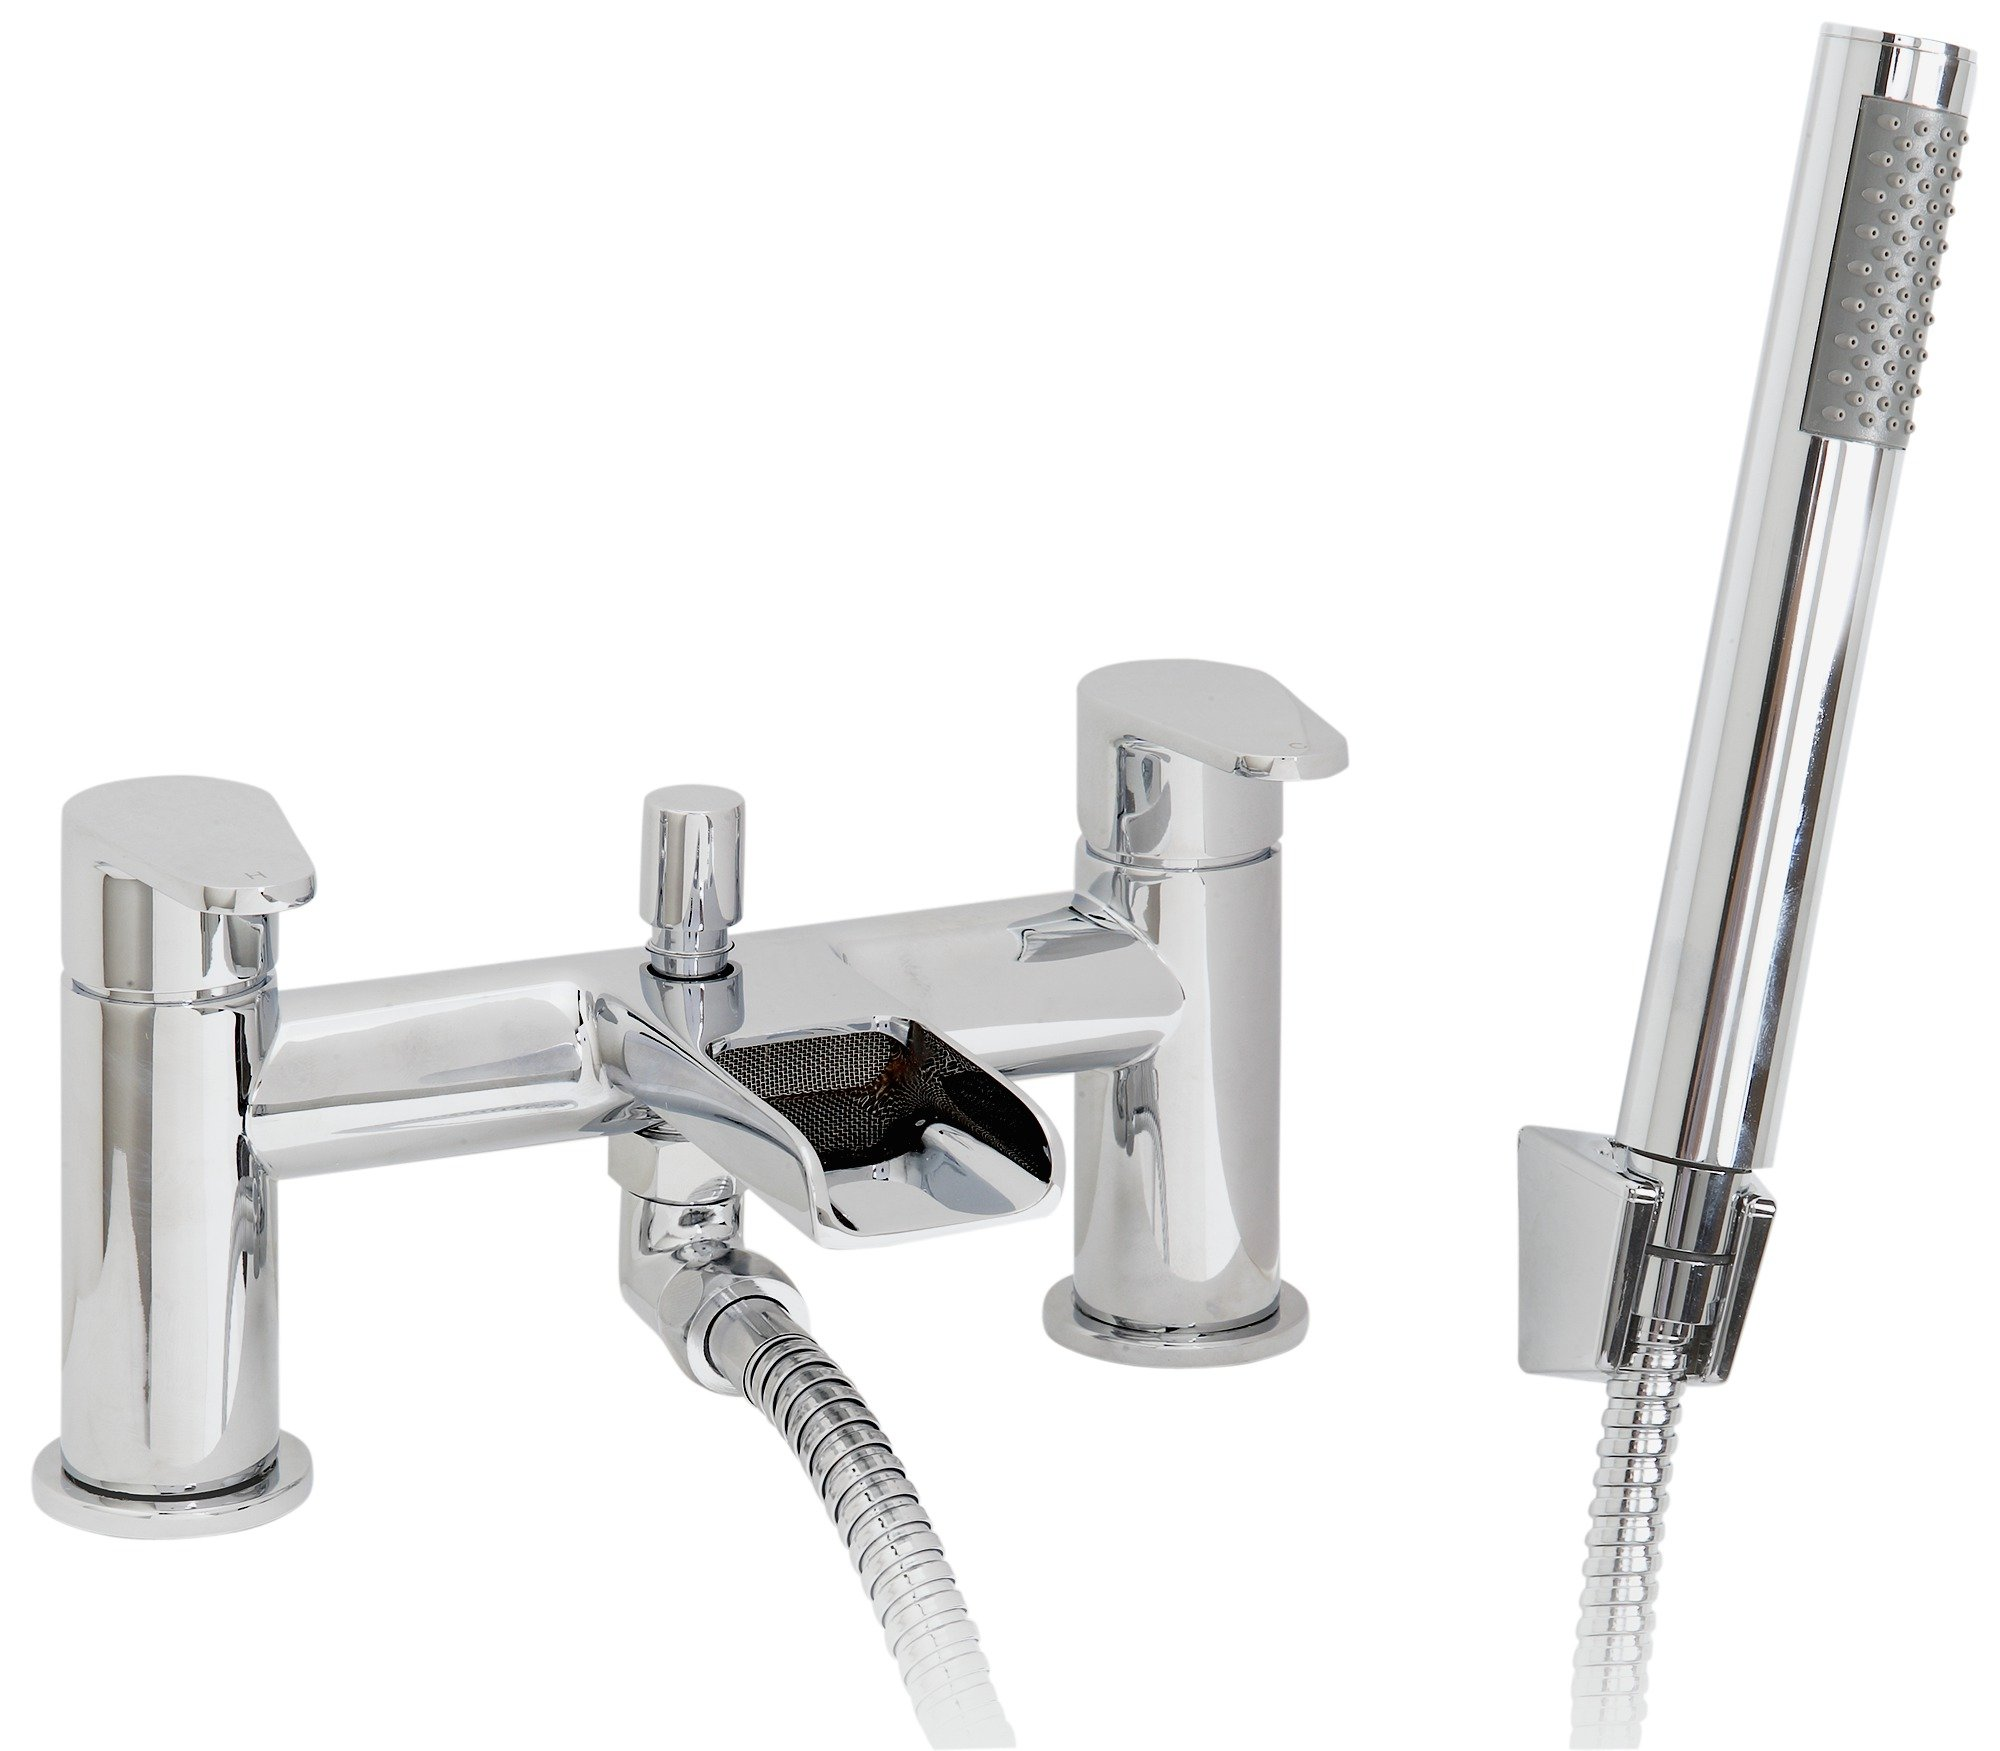 Argos Home Waterfall Bath and Shower Mixer Tap